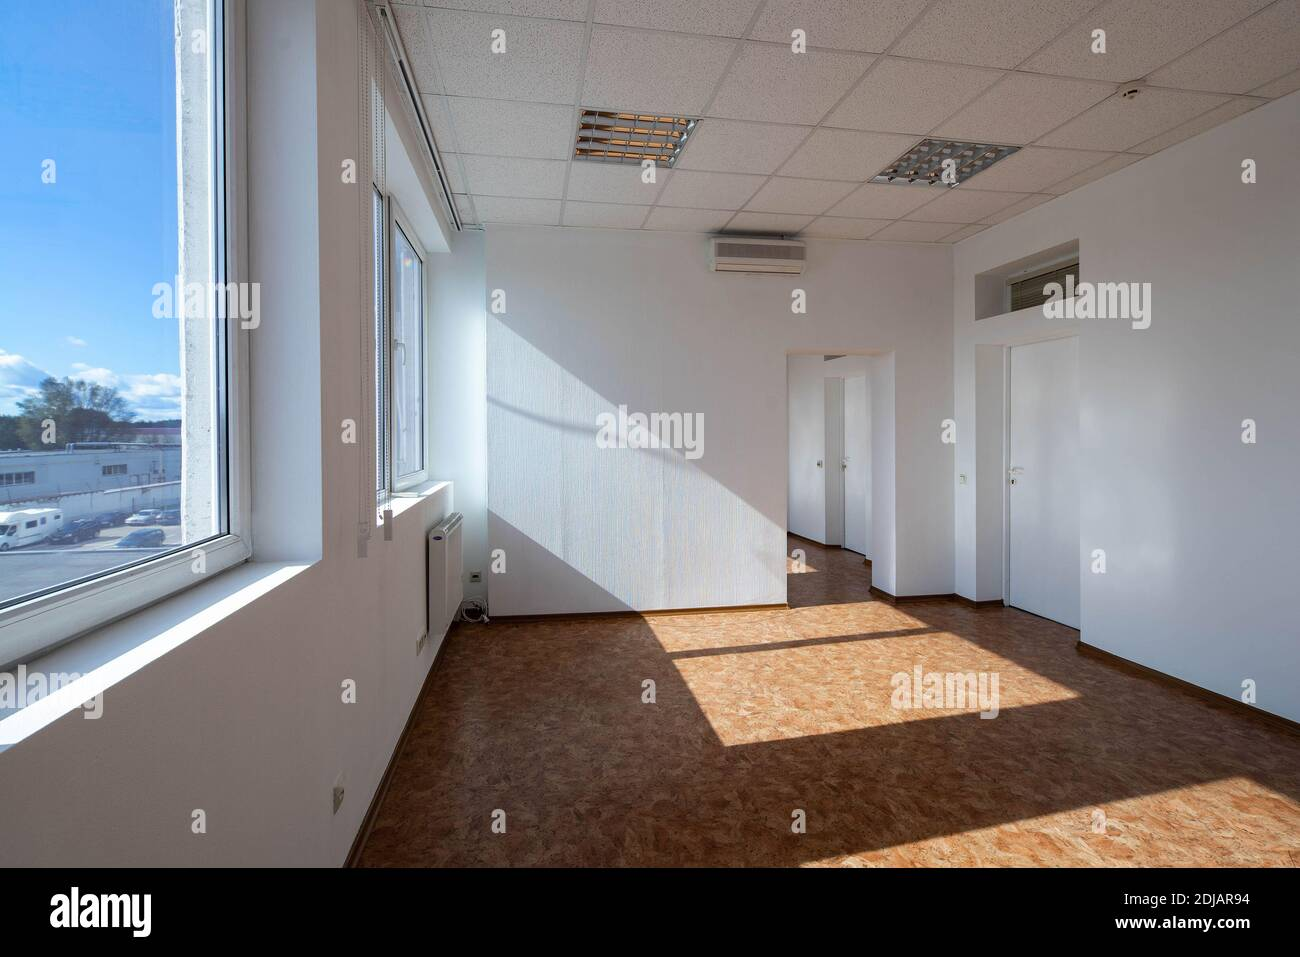 Modern Interior Of Empty Office Rooms White Walls And Door Huge Windows Sunny Day Air Conditioner Stock Photo Alamy